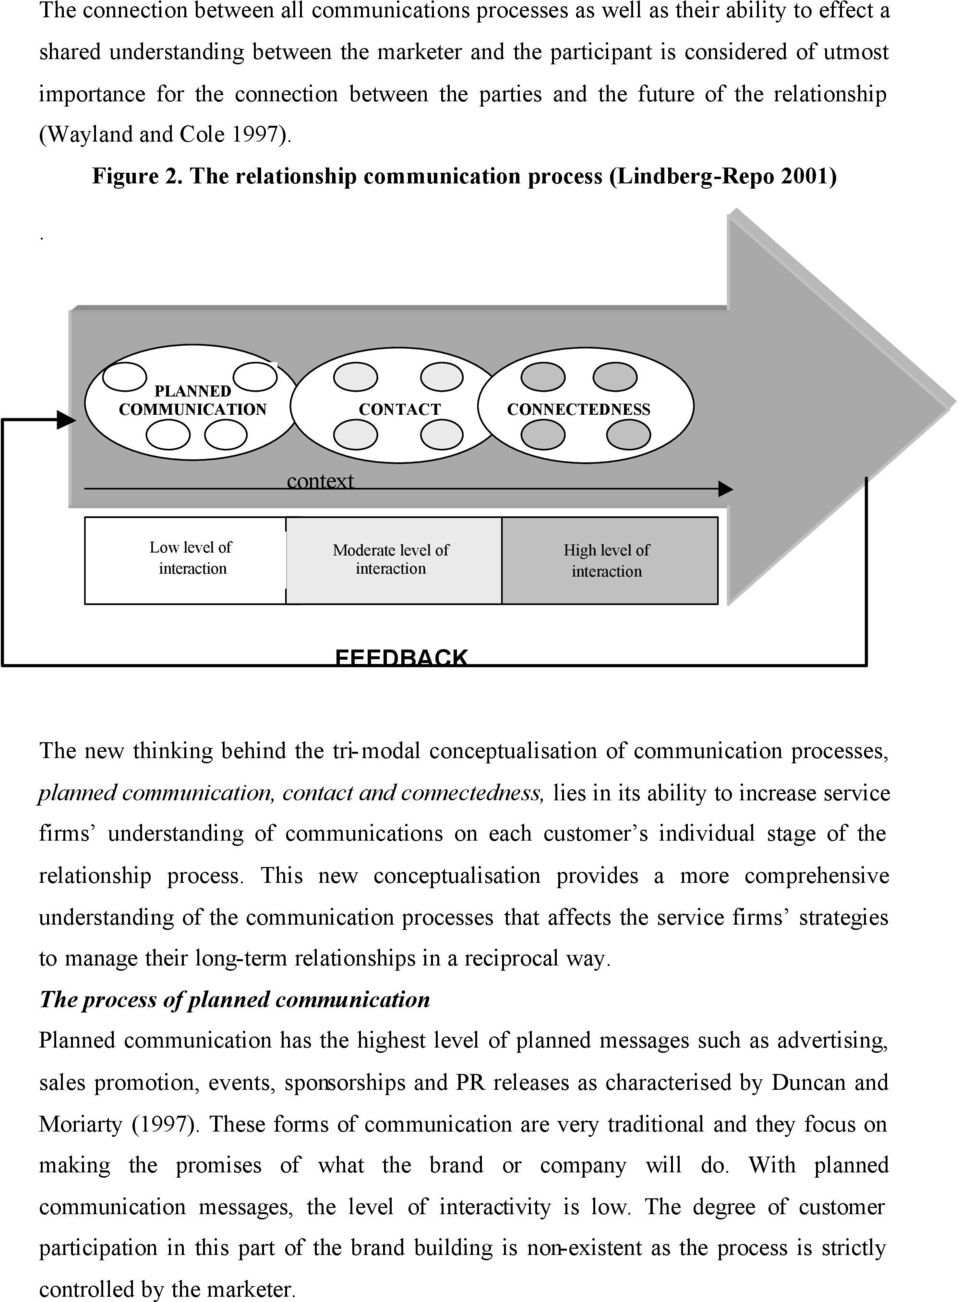 PLANNED COMMUNICATION CONTACT CONNECTEDNESS context Low level of interaction Moderate level of interaction Moderate level of High level of interaction FEEDBACK The new thinking behind the tri-modal